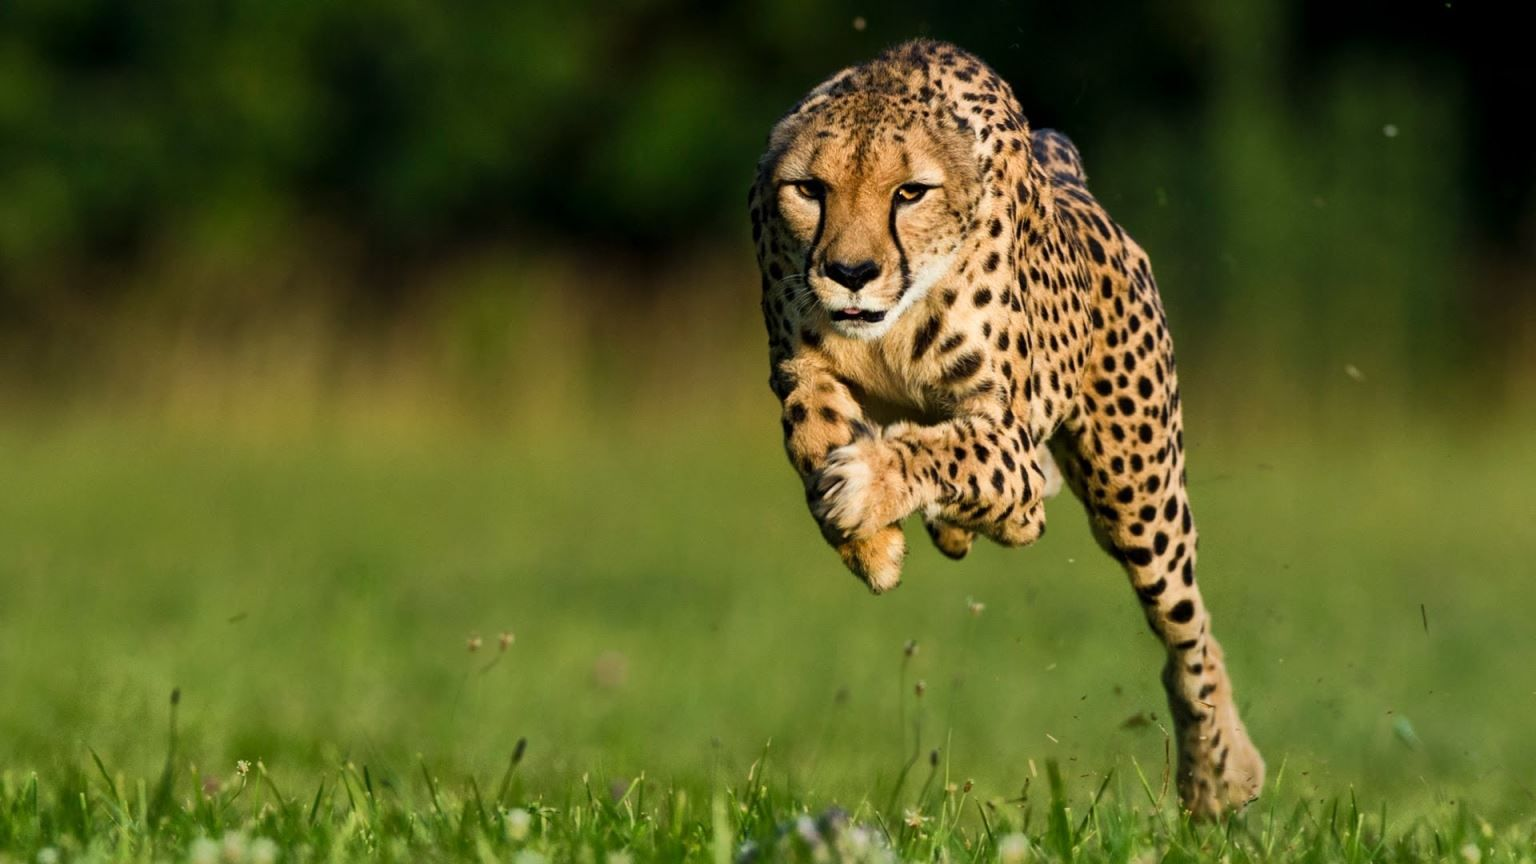 1536x864 Most 50 Cheetah animals photos hd wallpapers free download